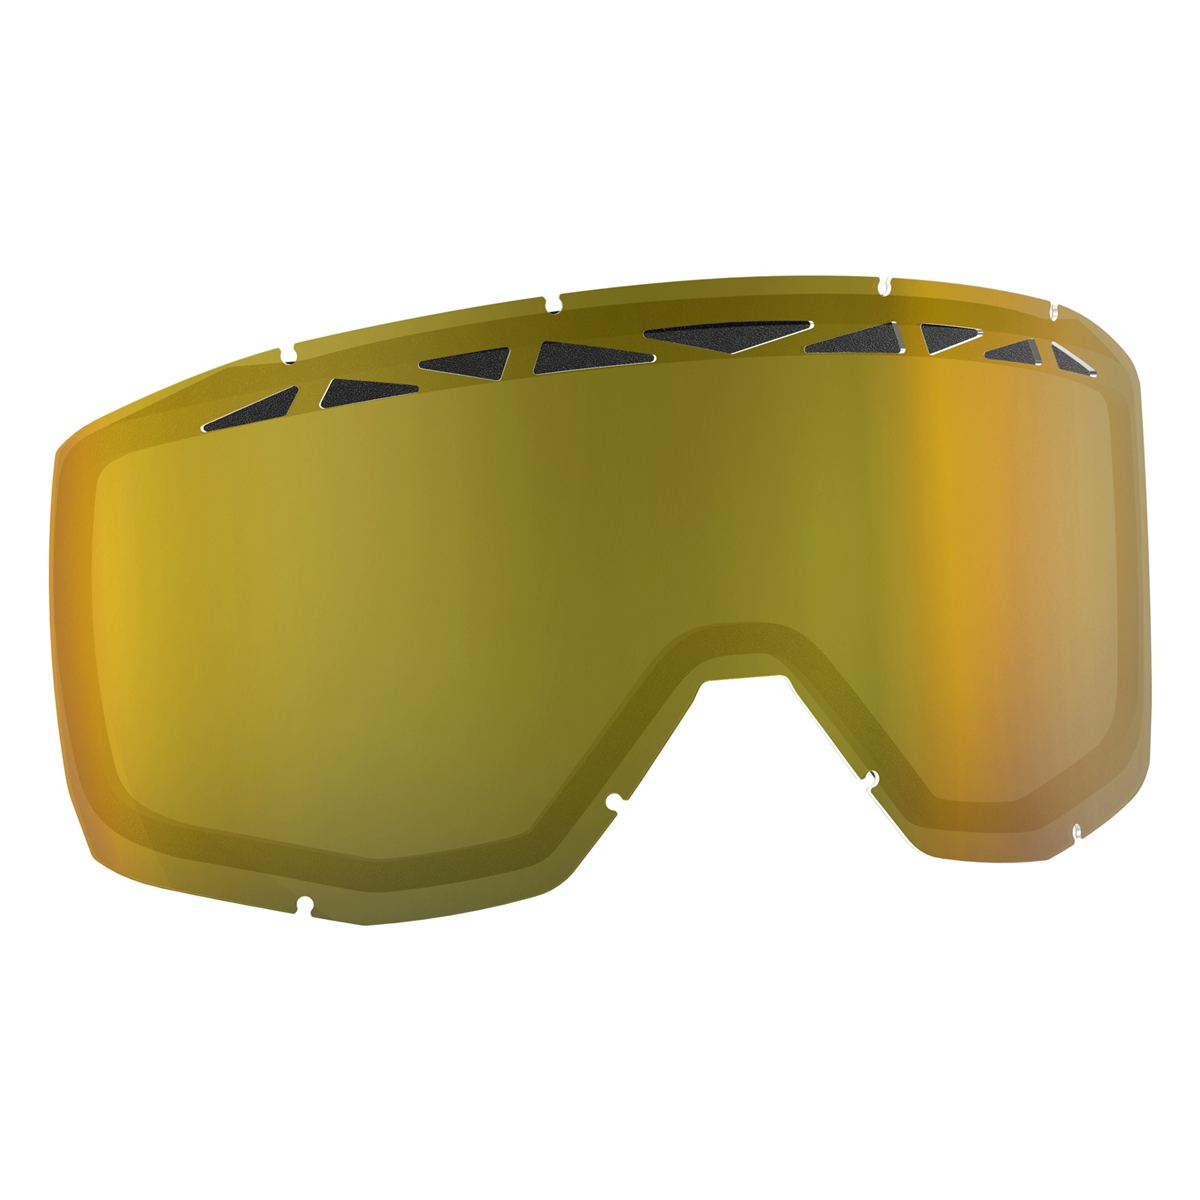 Replacement Double lens with ACS for HUSTLE/PRIMAL/SPLIT OTG/TYRANT Goggles - Yellow Antifog